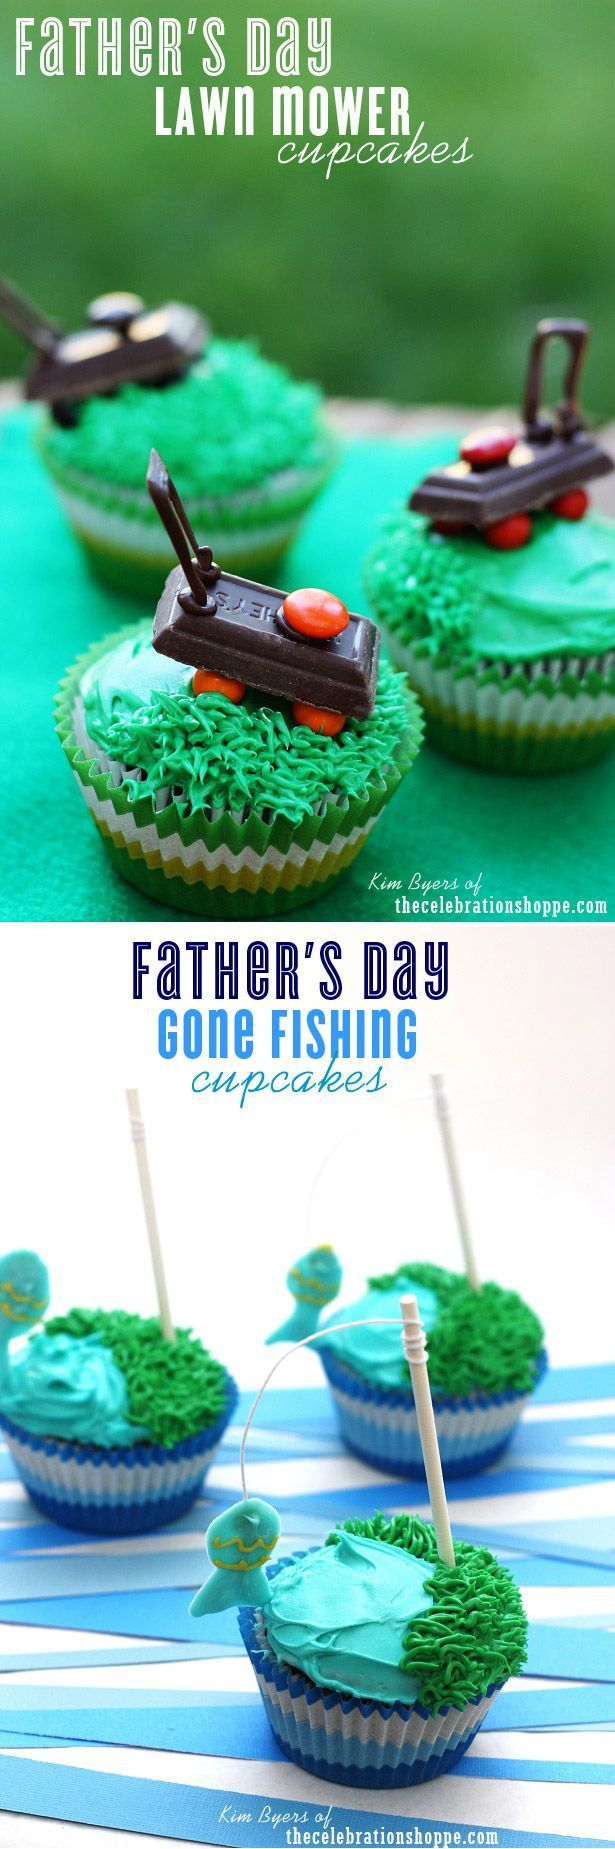 82 Best Images About Father 39 S Day Cakes On Pinterest